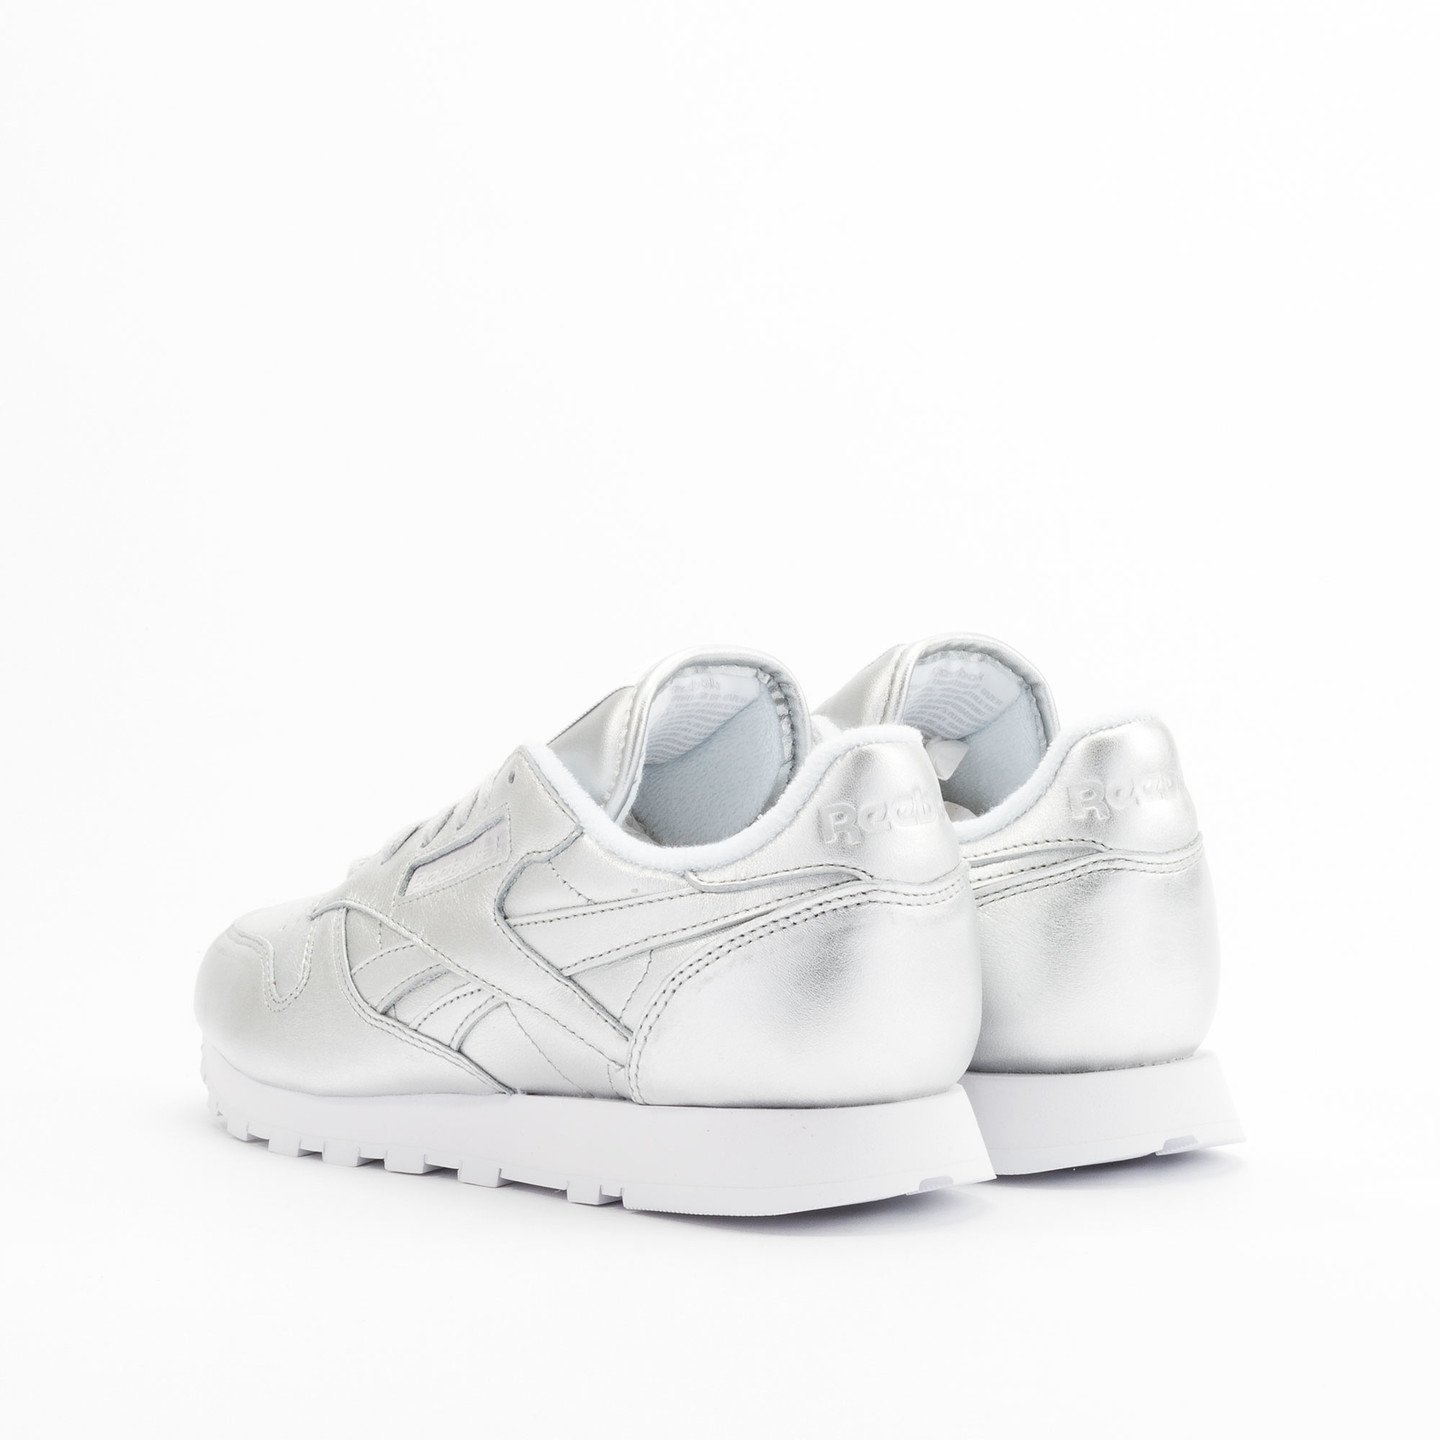 Reebok Classic Leather Spirit Presence Silver / White V62700-38.5